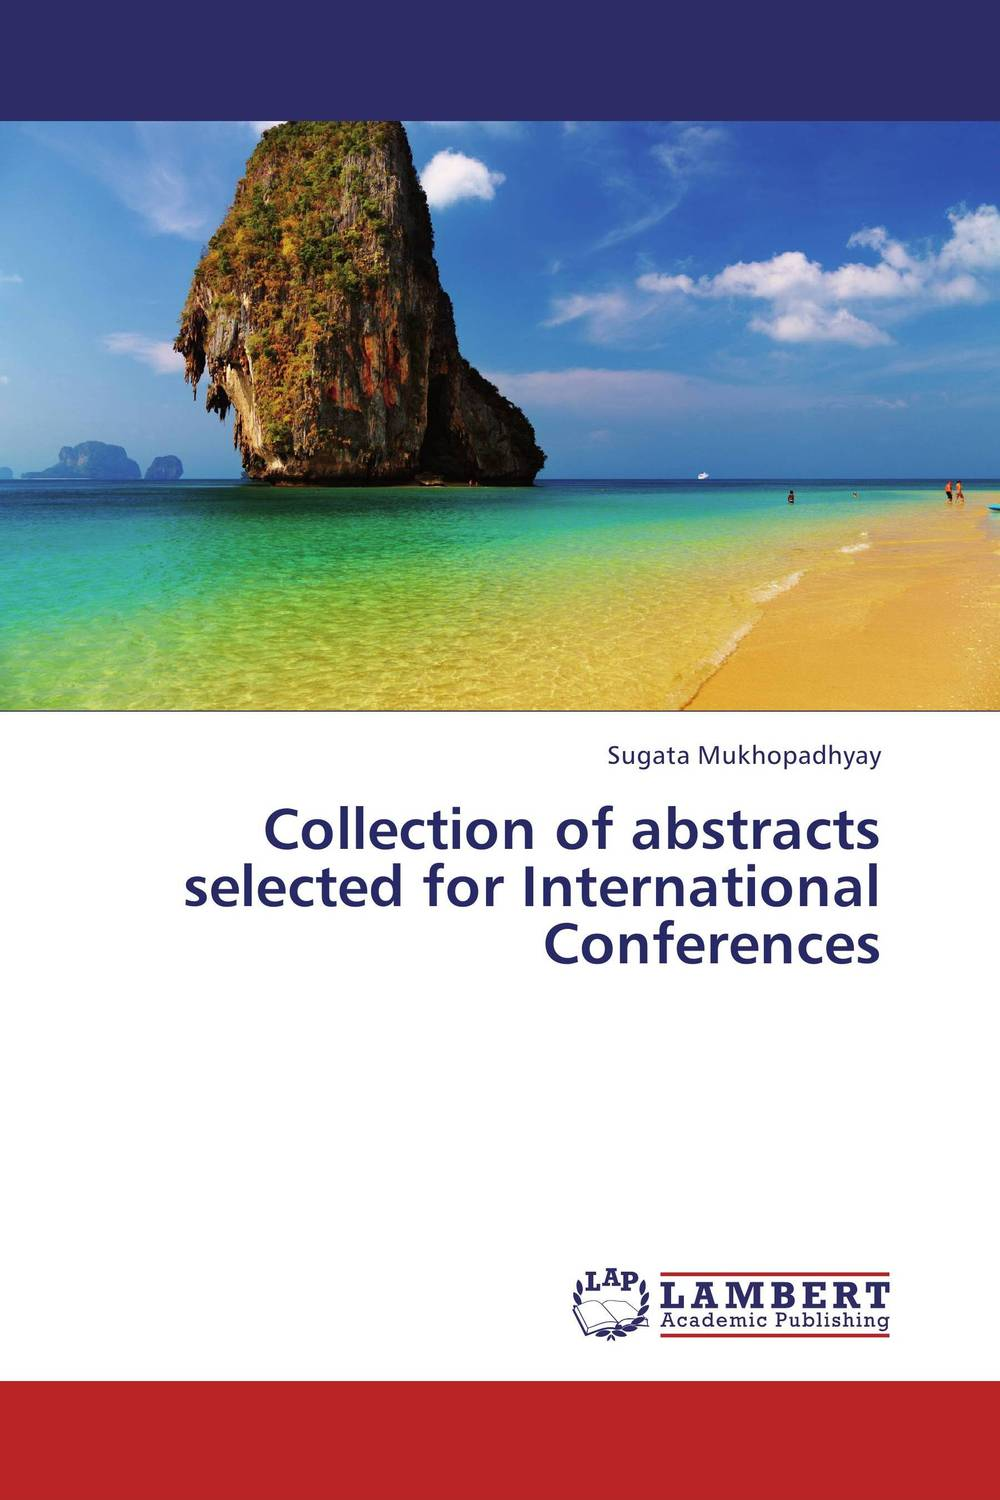 Collection of abstracts selected for International Conferences